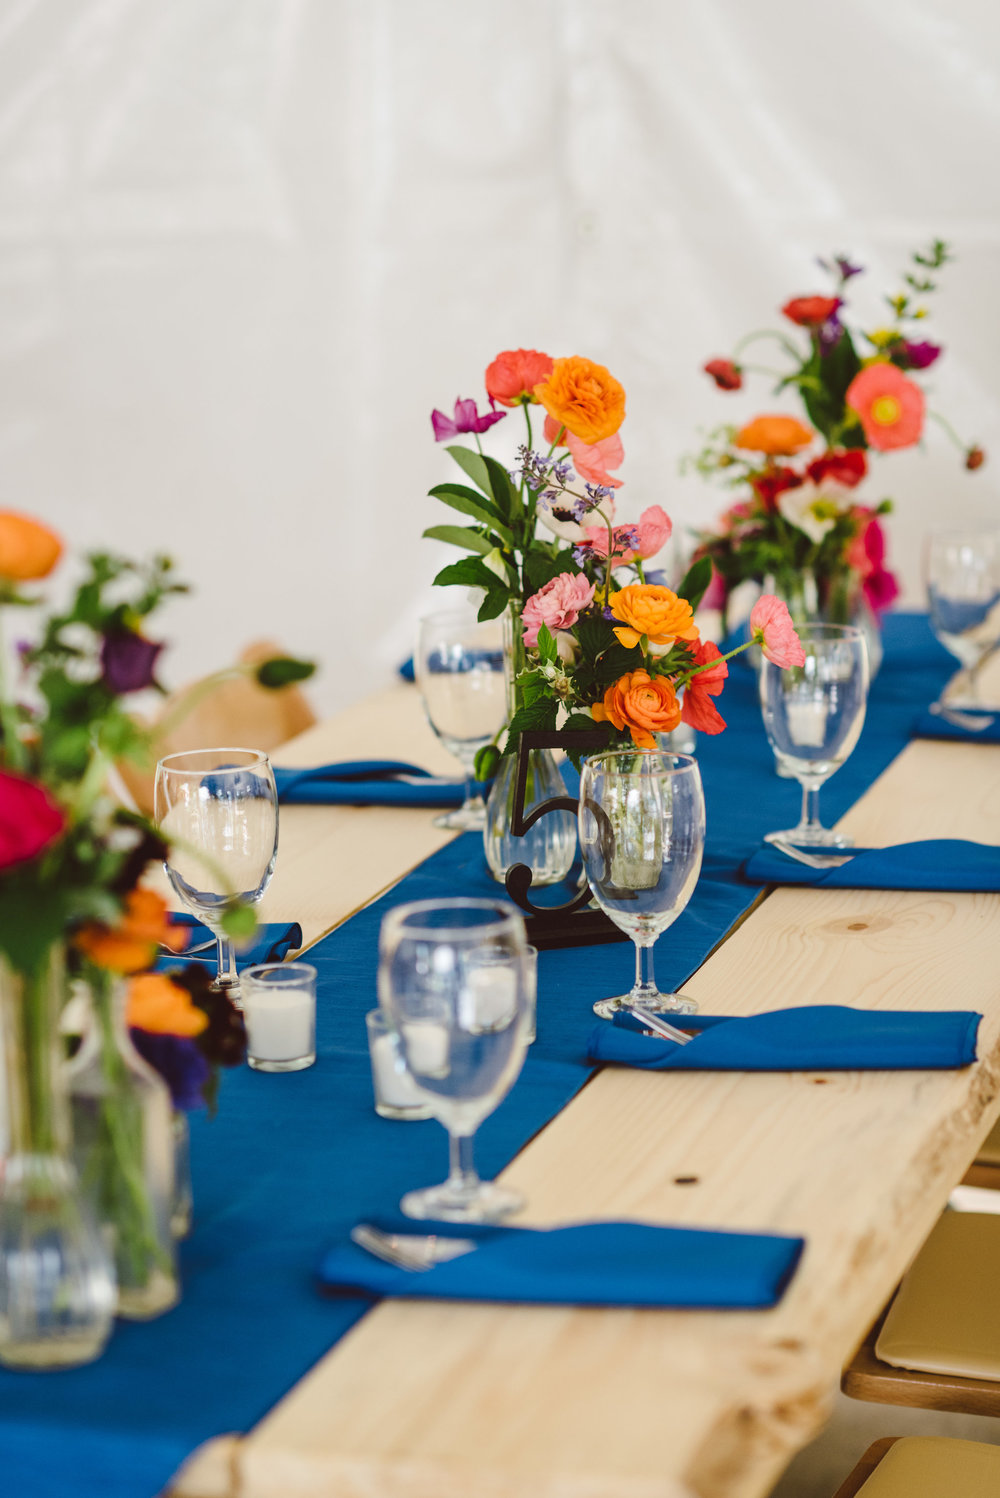 Farm tables with bright flowers and blue accents